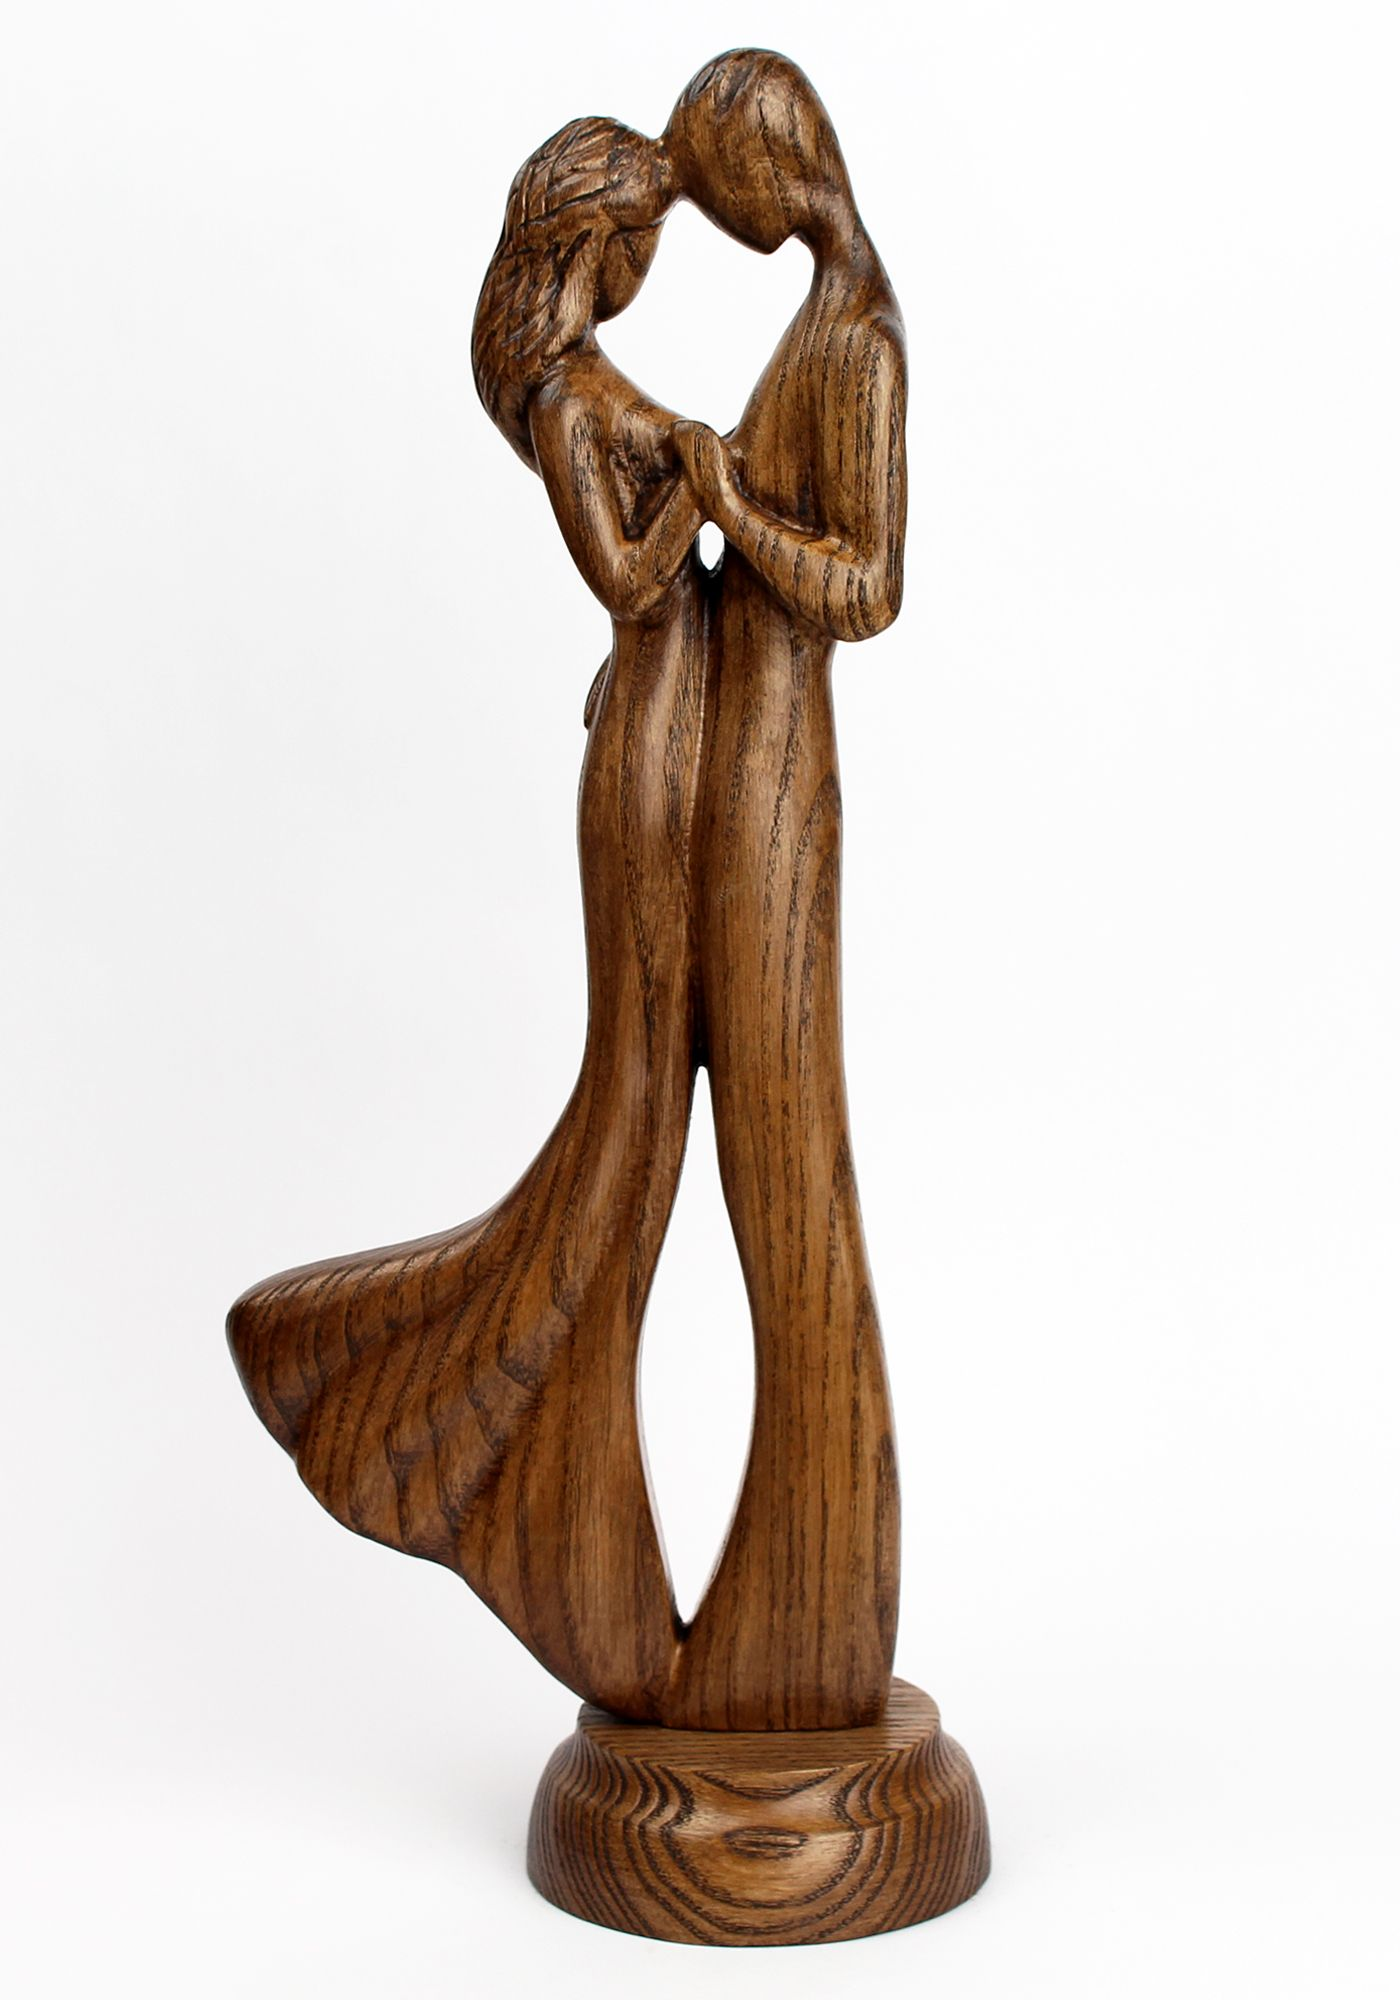 Family Figurine For Home Decoration By Woodsoulcarving Mom And Dad Sculpture Of Carved Wood For Interior De Wood Statues Wood Sculpture Carved Wood Sculpture